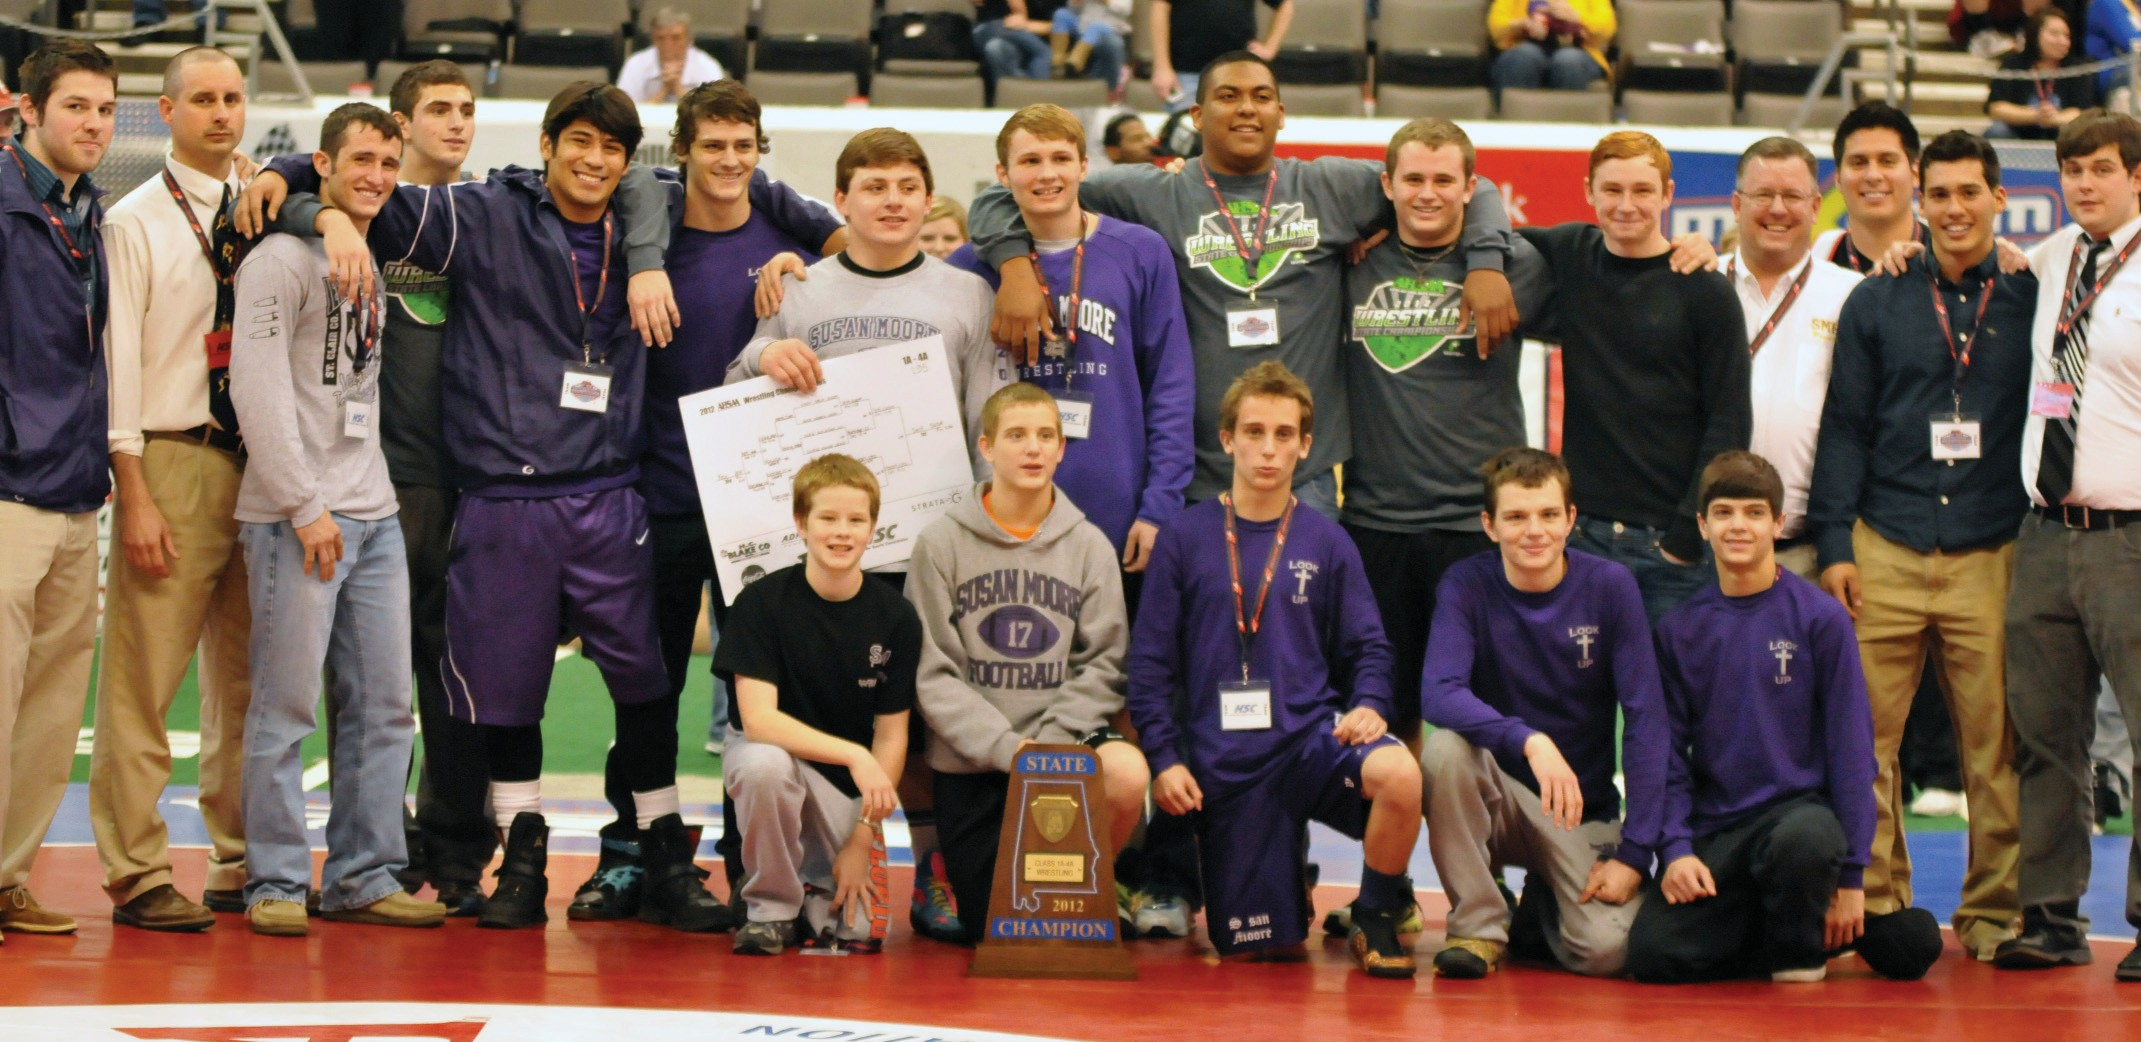 The Susan Moore High School wrestling team went to Huntsville last week and brought home the Alabama 1A-4A state title. The team, under the direction of head coach Andy Holland, led for most of the tournament but fell behind St. Clair County on Saturday. However, the Bulldogs rallied for the win with 91 points, just ahead of Oak Grove at 86.5 points and St. Clair County at 86 points. Susan Moore's Cody Self, who was the state 189-pound champion last year, blitzed through the state tournament with three straight pins to win the 195-pound class. Other wrestlers that placed high at the state tournament: Freddy Hernandez (2nd place – 170-pound), Dylan Bishop (2nd place – 145-pound), Ty Sissom (3rd place – 113-pound), and Andy Waller (3rd place – 182-pound). – Rob Rice